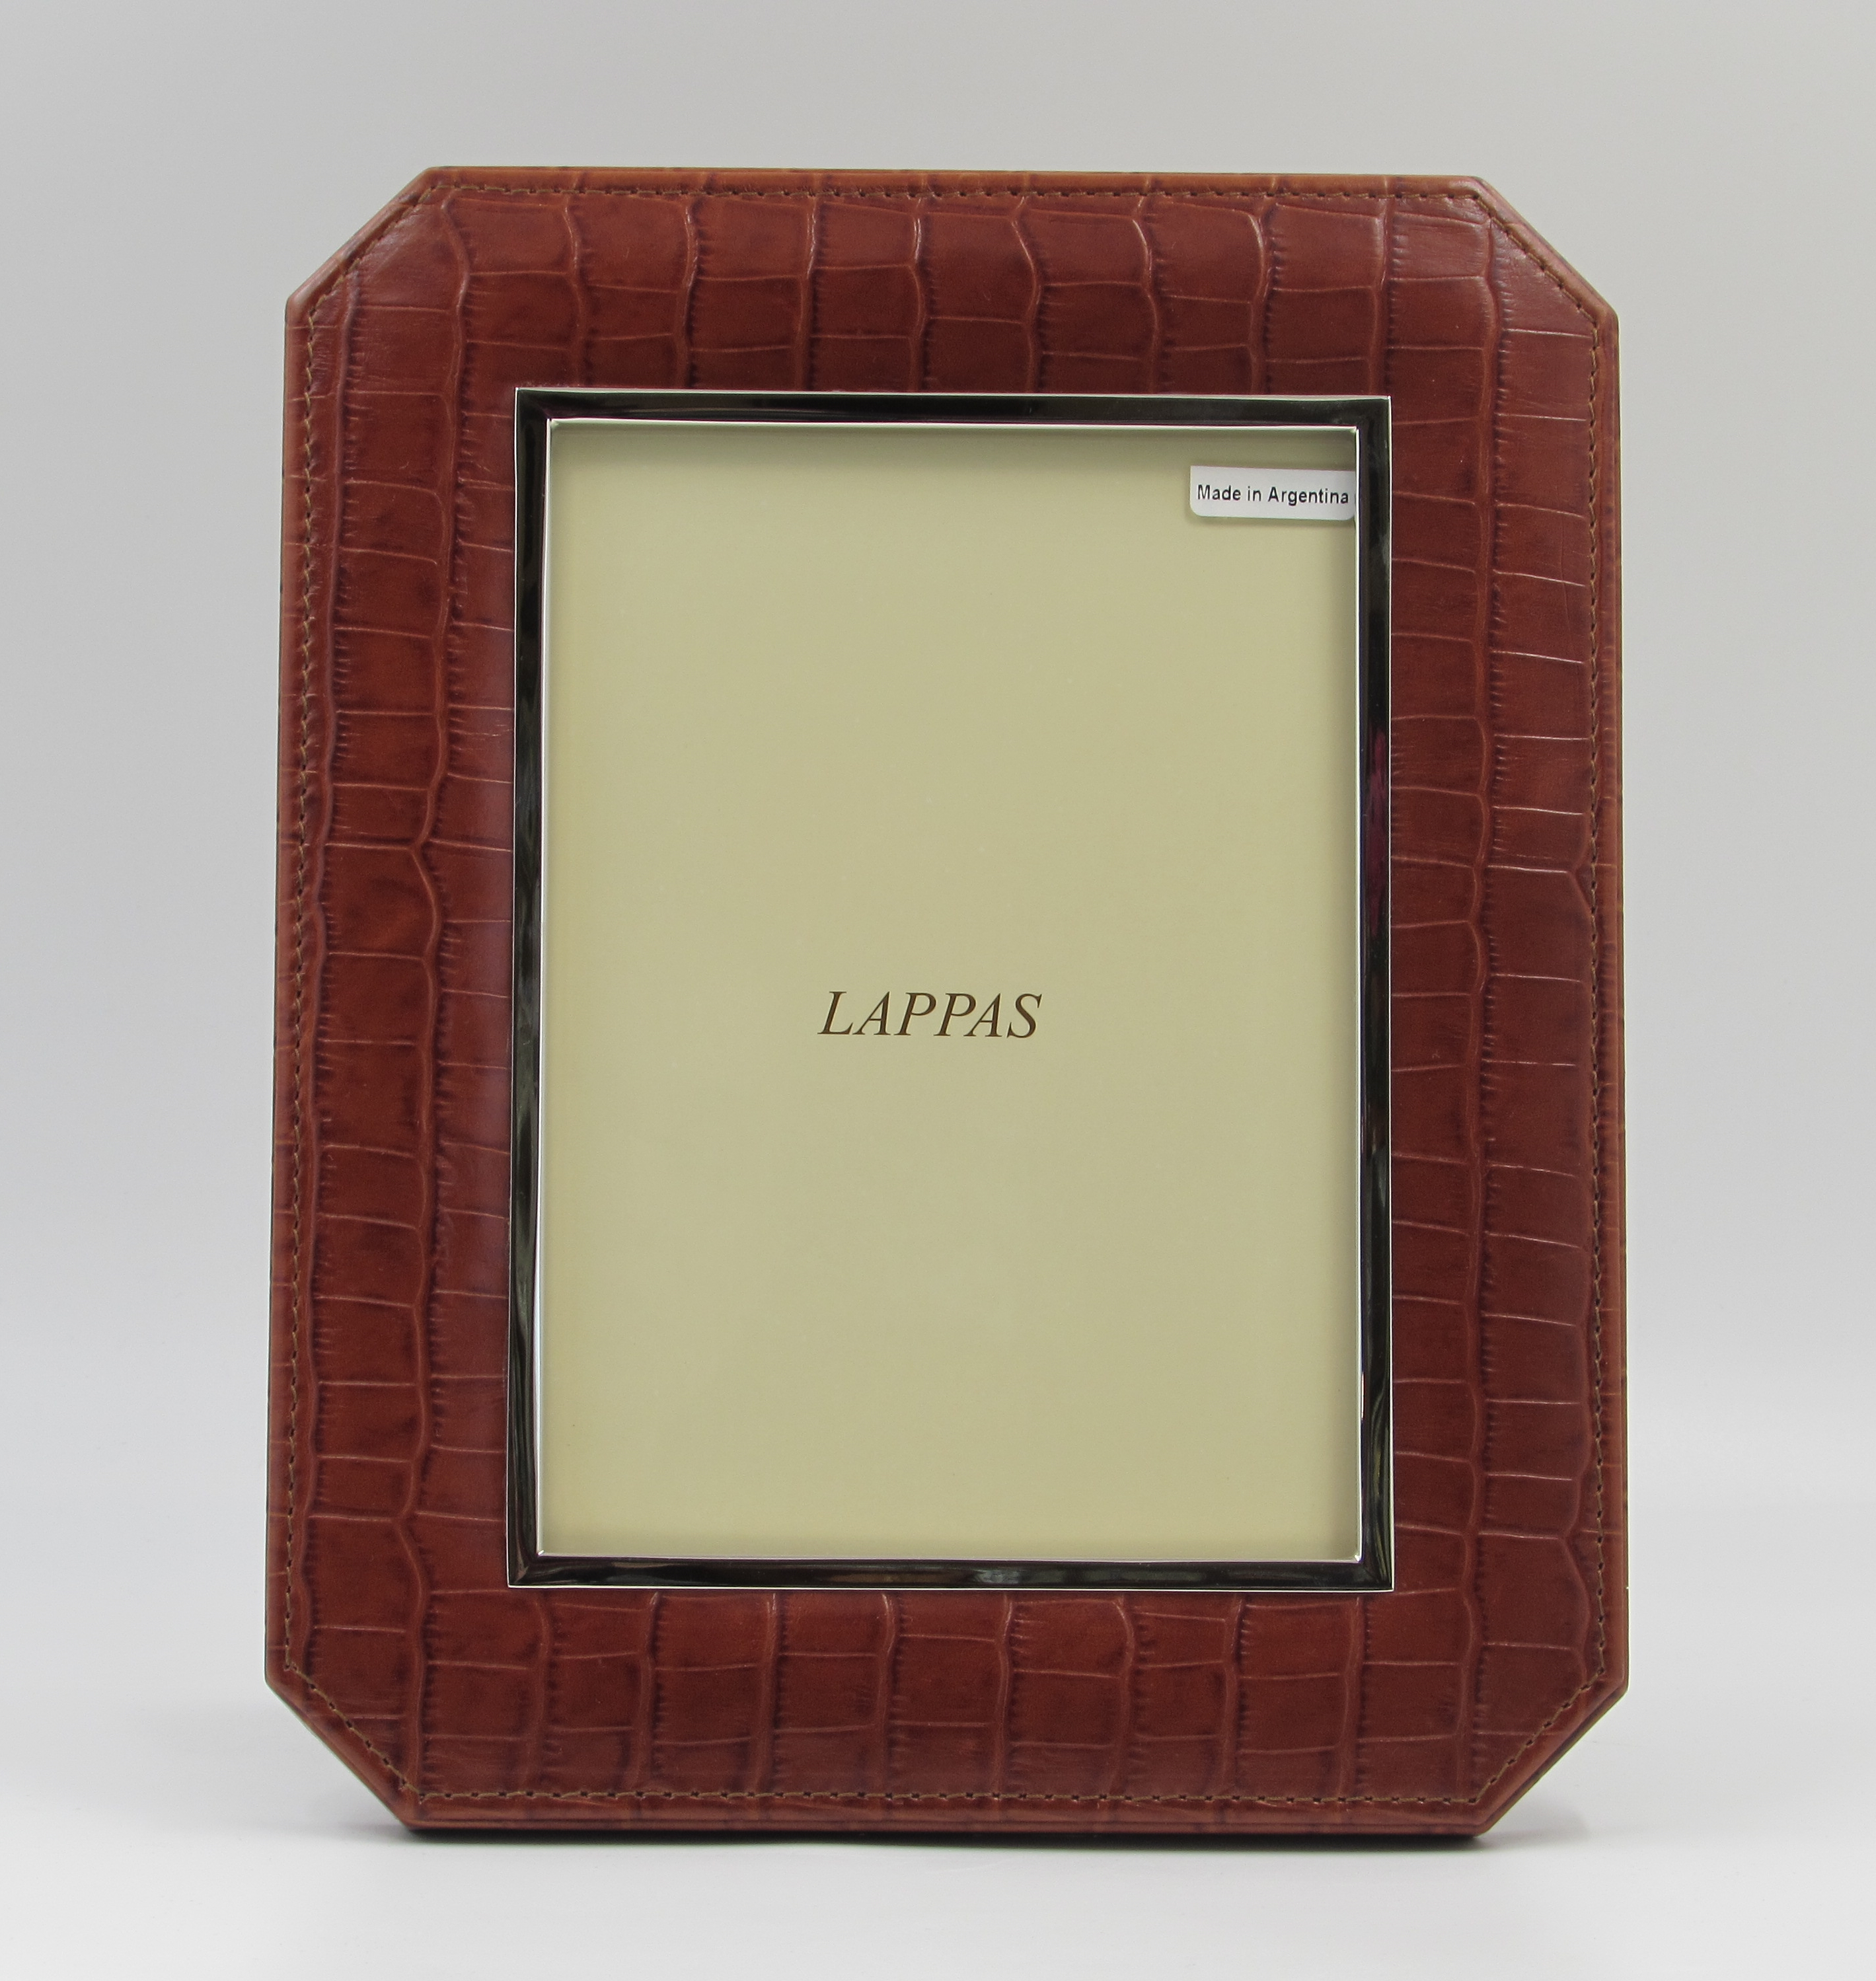 Lappas Cognac Color Leather Frame With Cut Corners Silver Plate